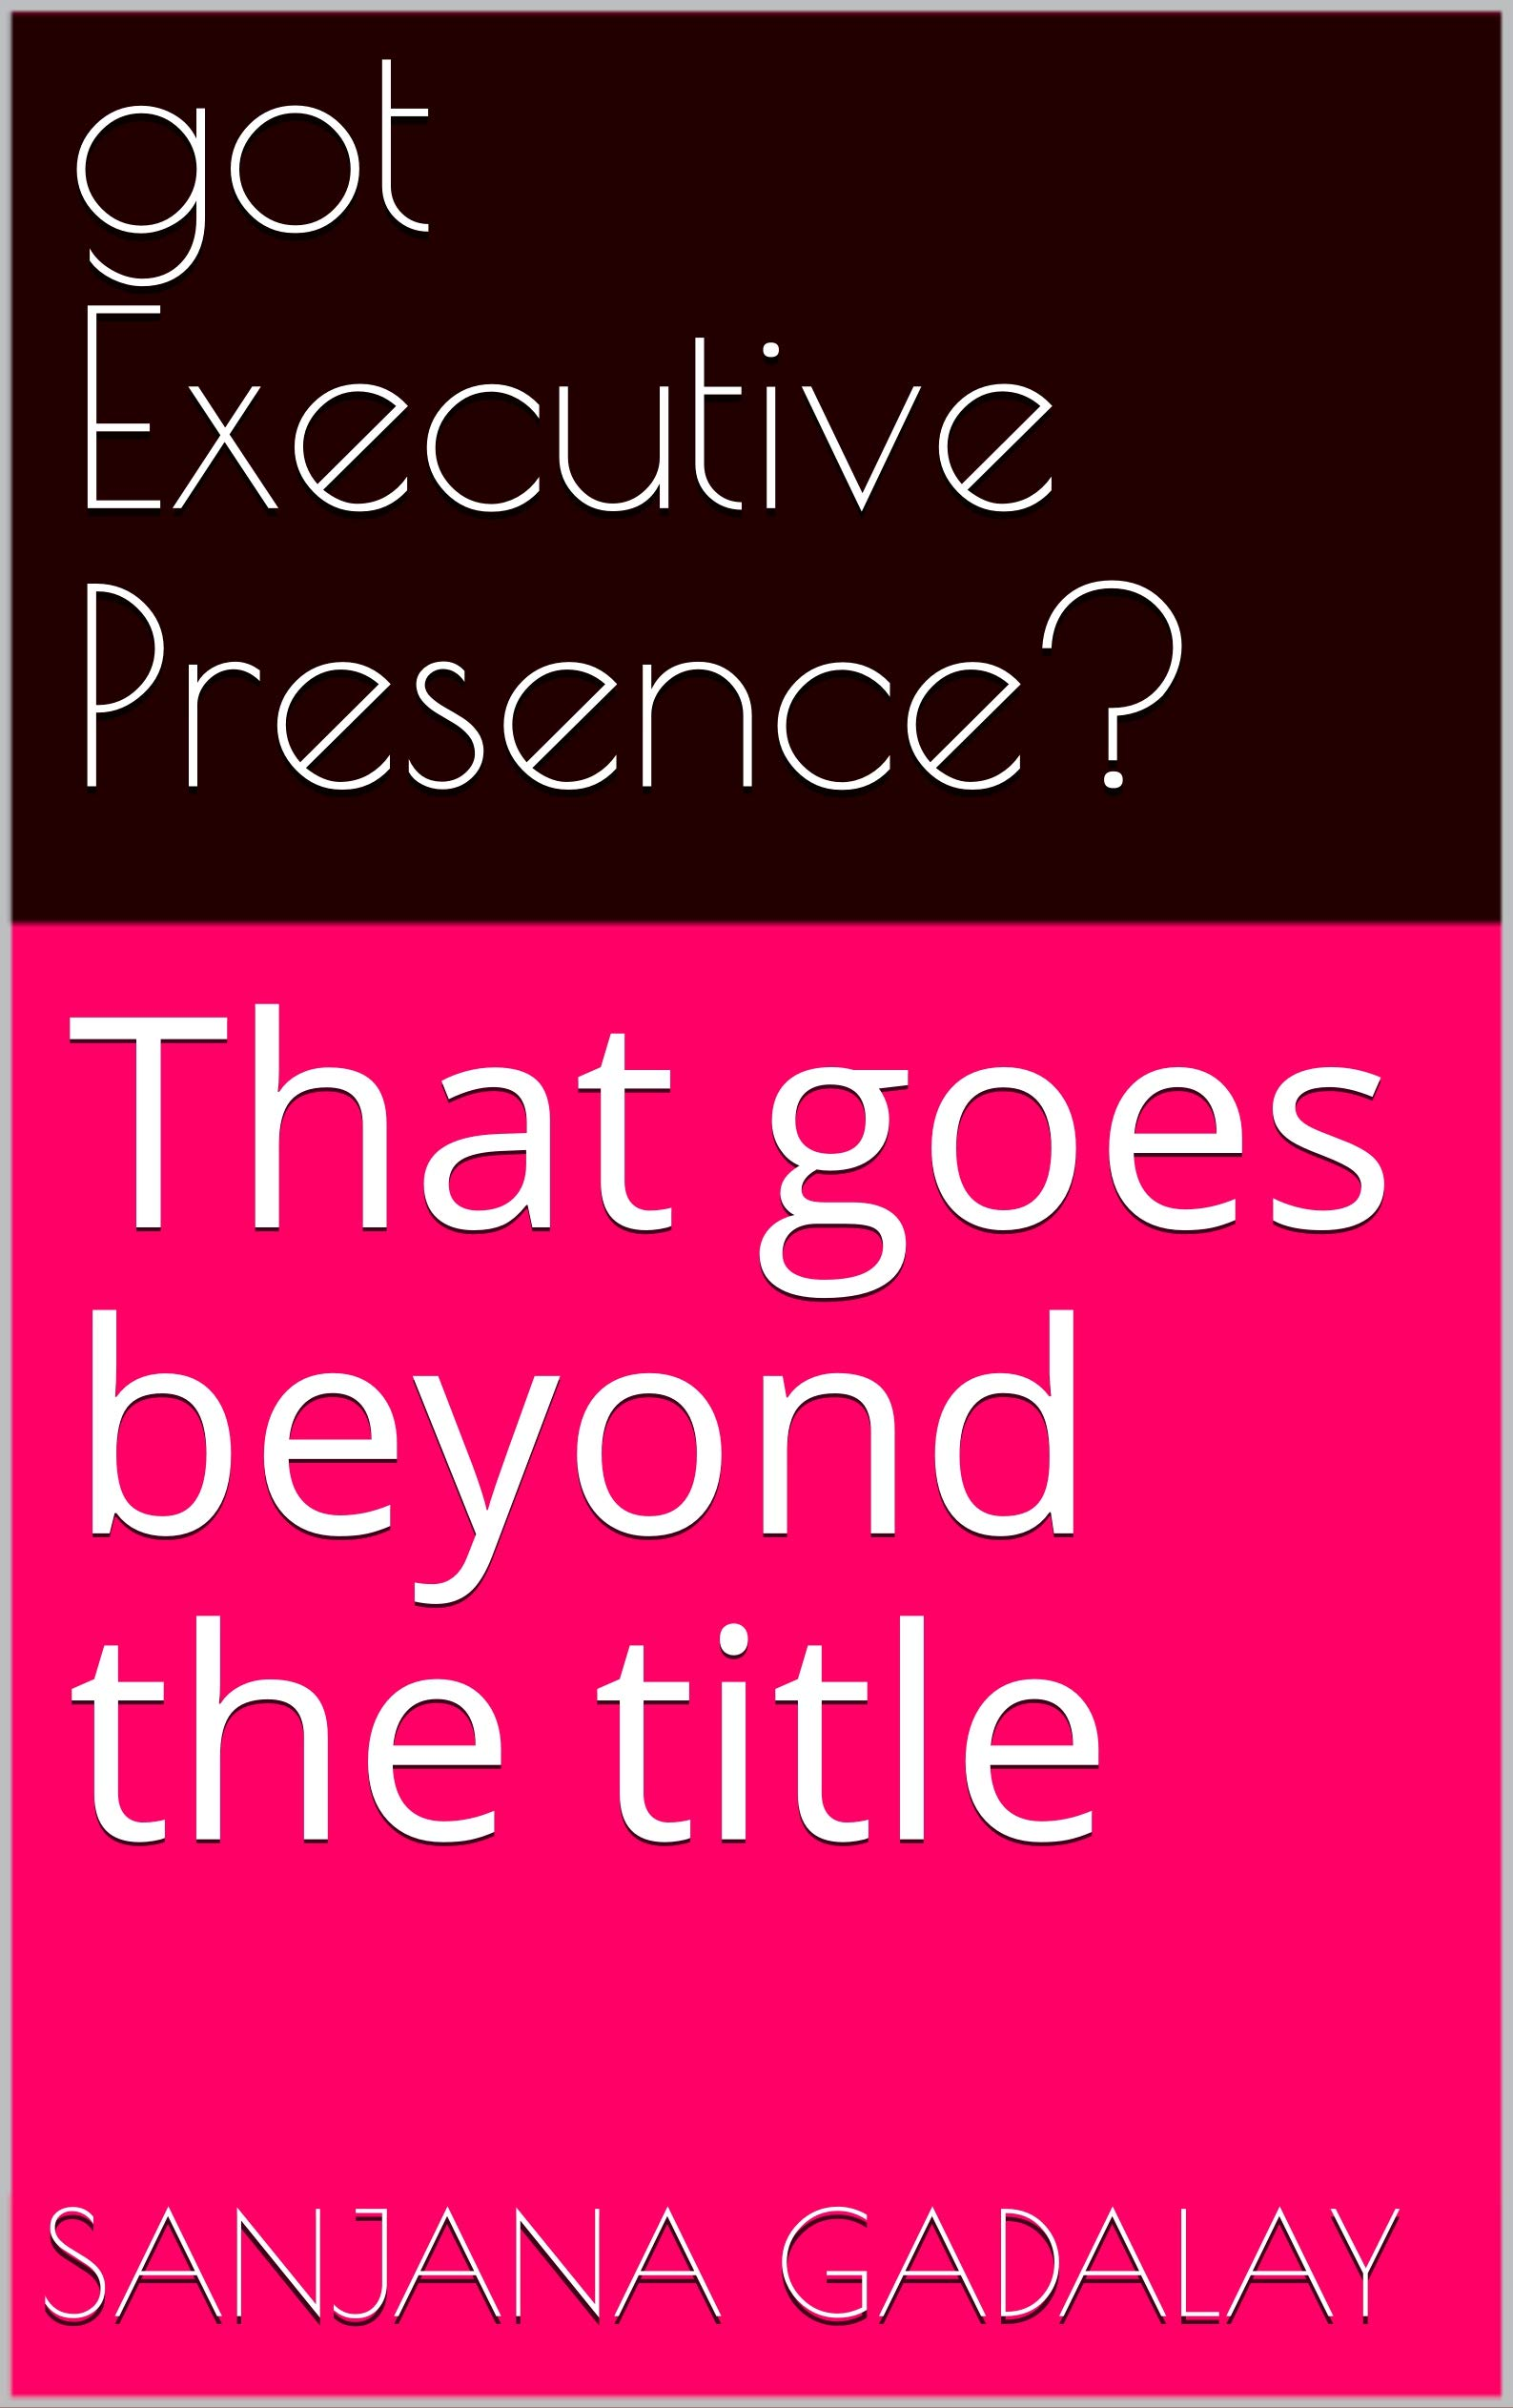 got Executive Presence?: That goes beyond the title